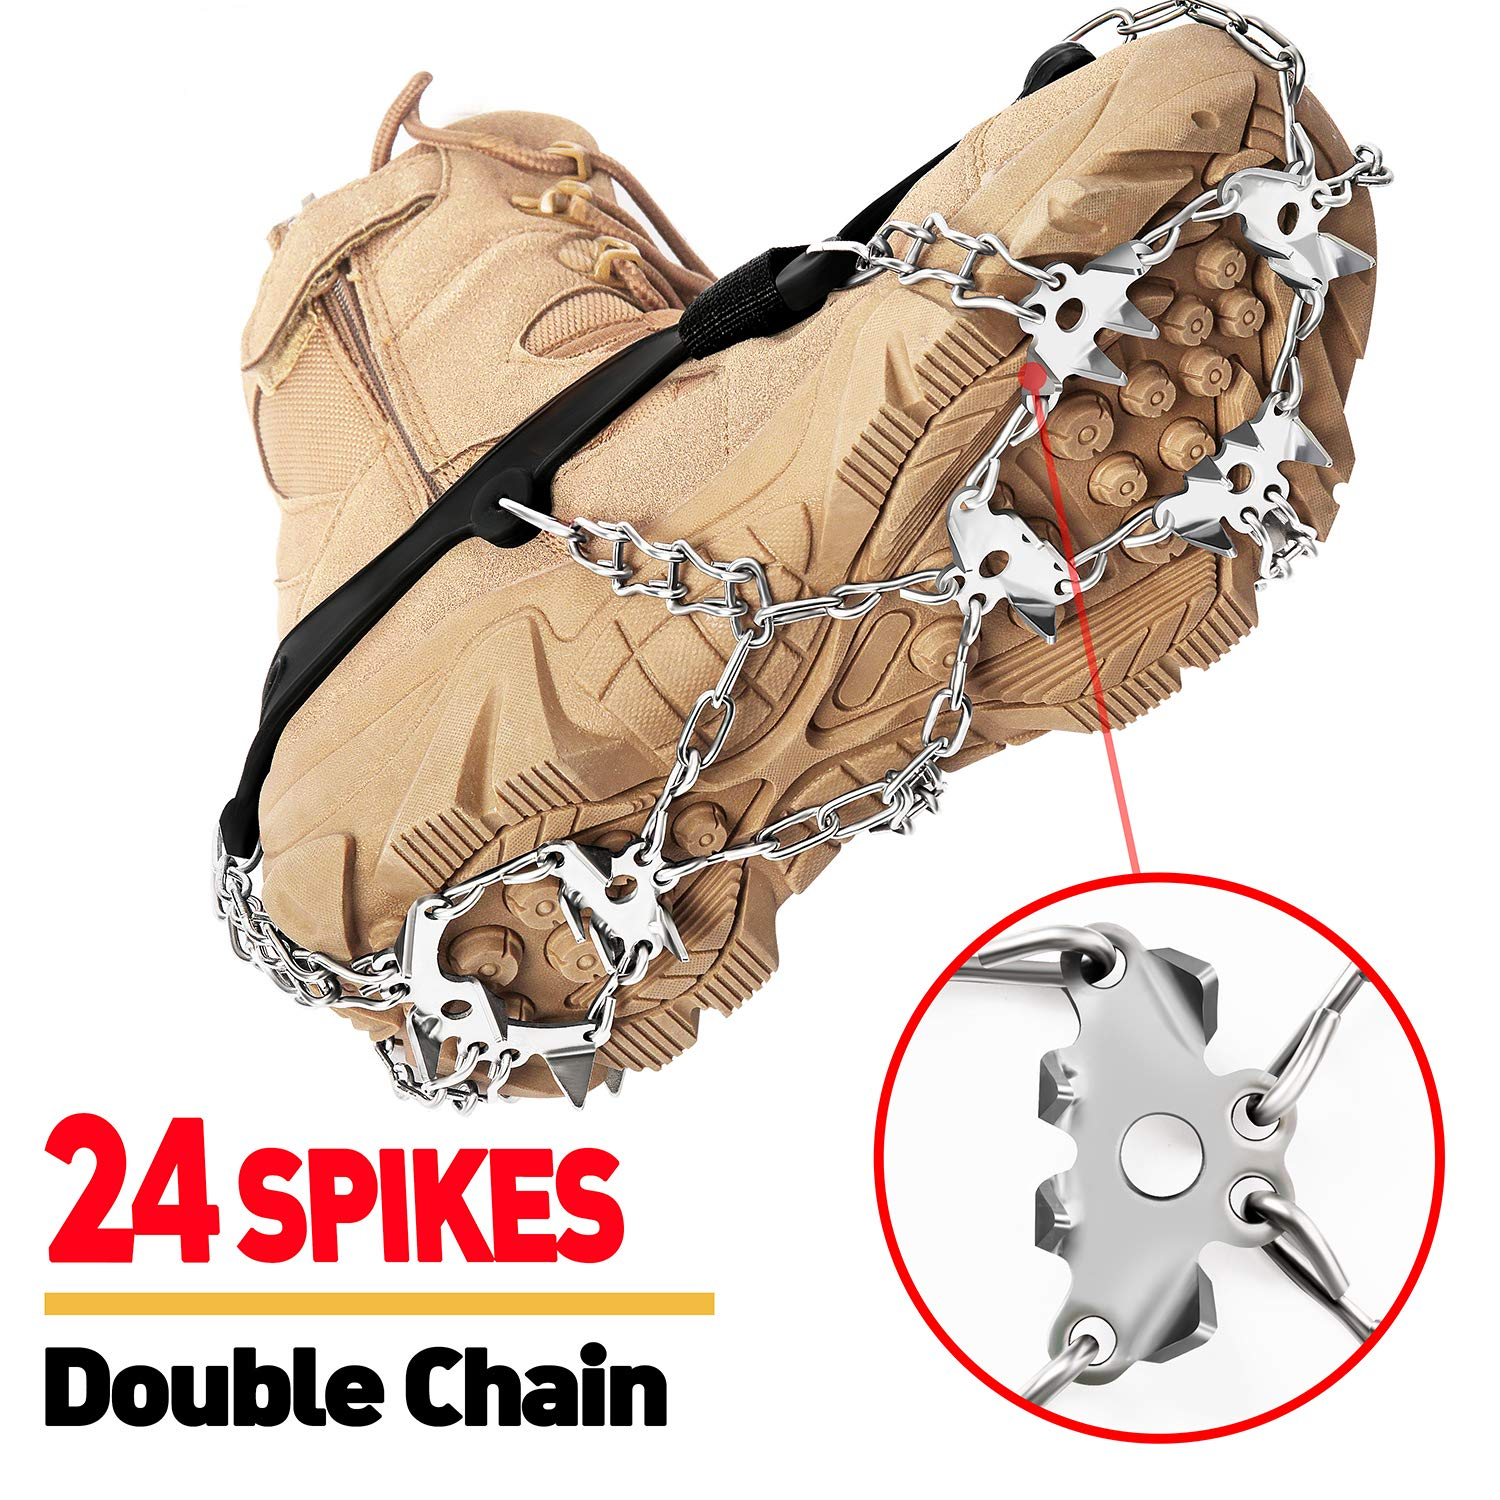 EnergeticSky 24 Spikes Crampons Ice Cleats Traction Snow Grips for Boots Shoes,Anti-Slip Stainless Steel Spikes,Microspikes for Hiking Fishing Walking Climbing Jogging Mountaineering. by EnergeticSky